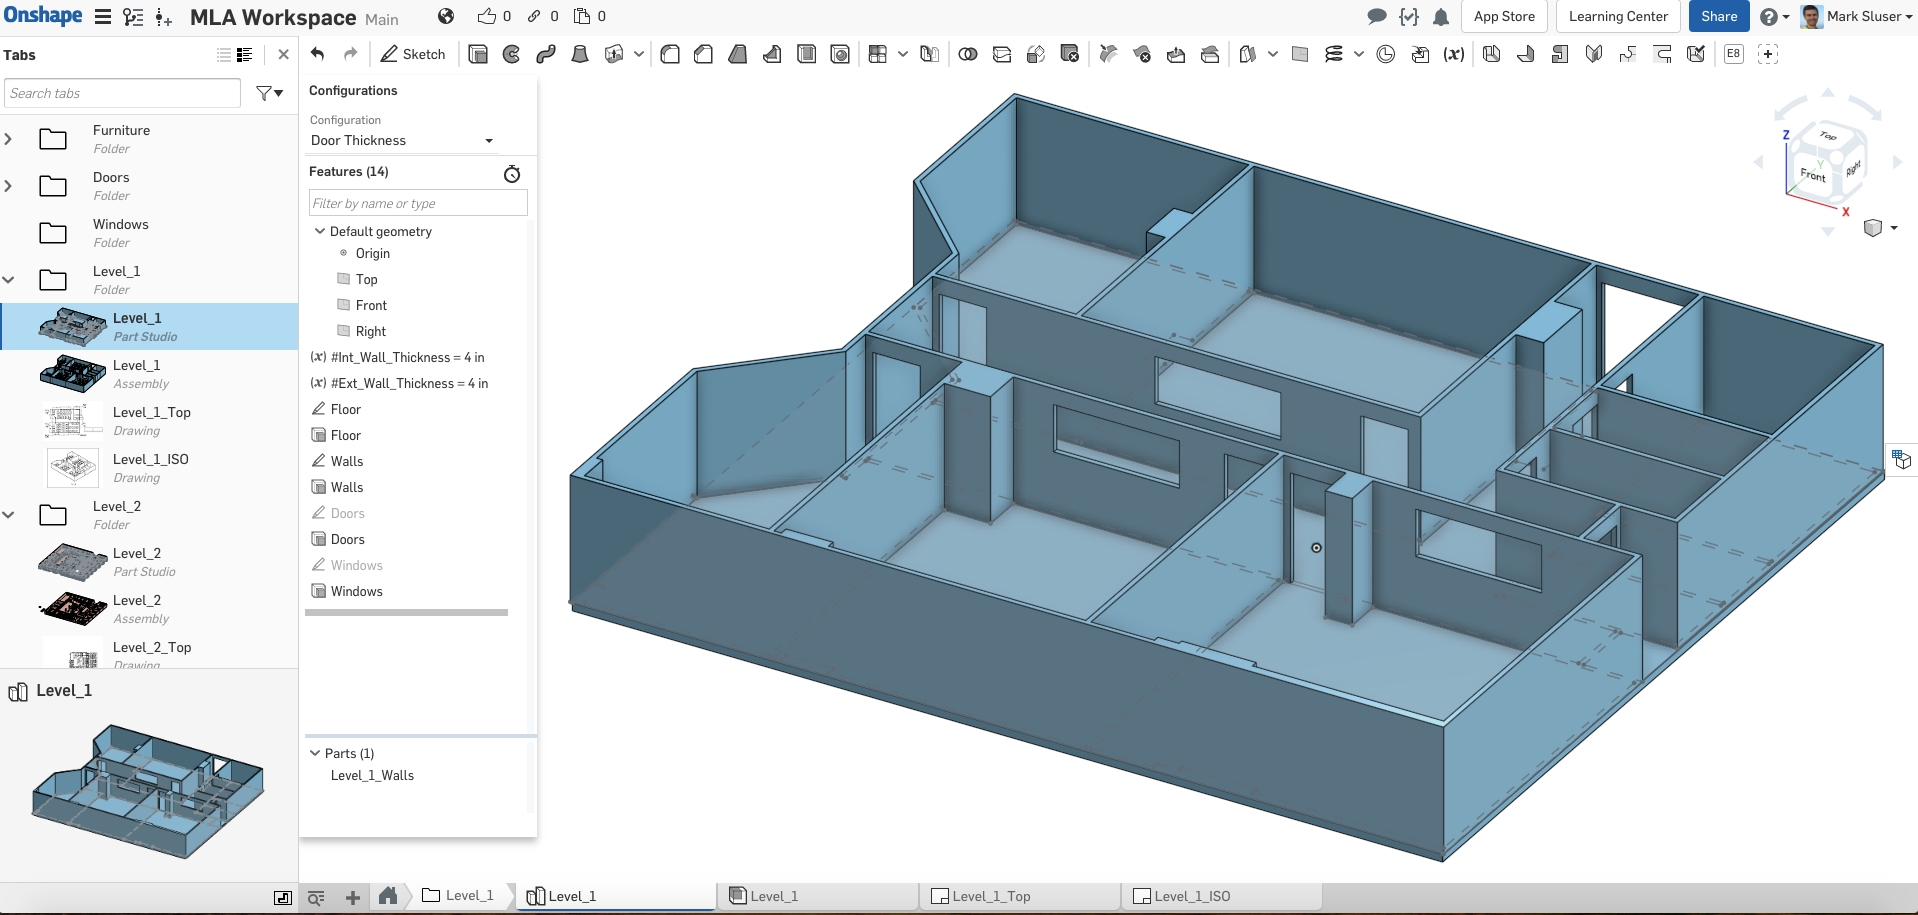 Building layouts floor plan seeking your advice onshape for Building layout maker